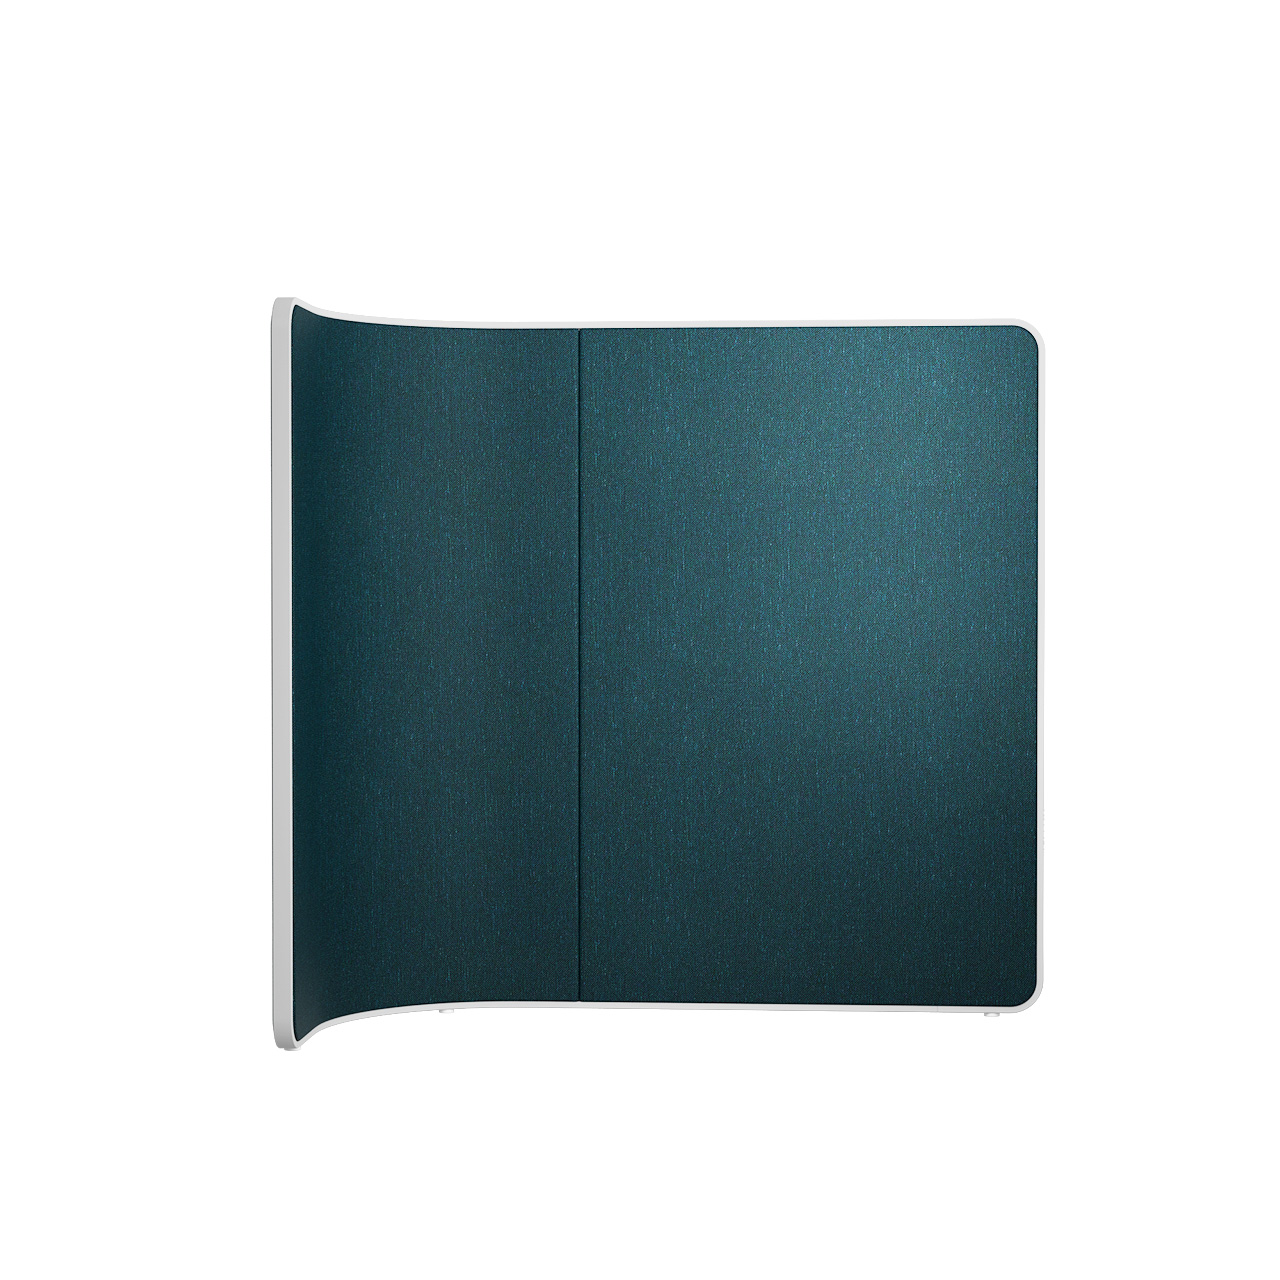 Screen Space Divider by Lapalma